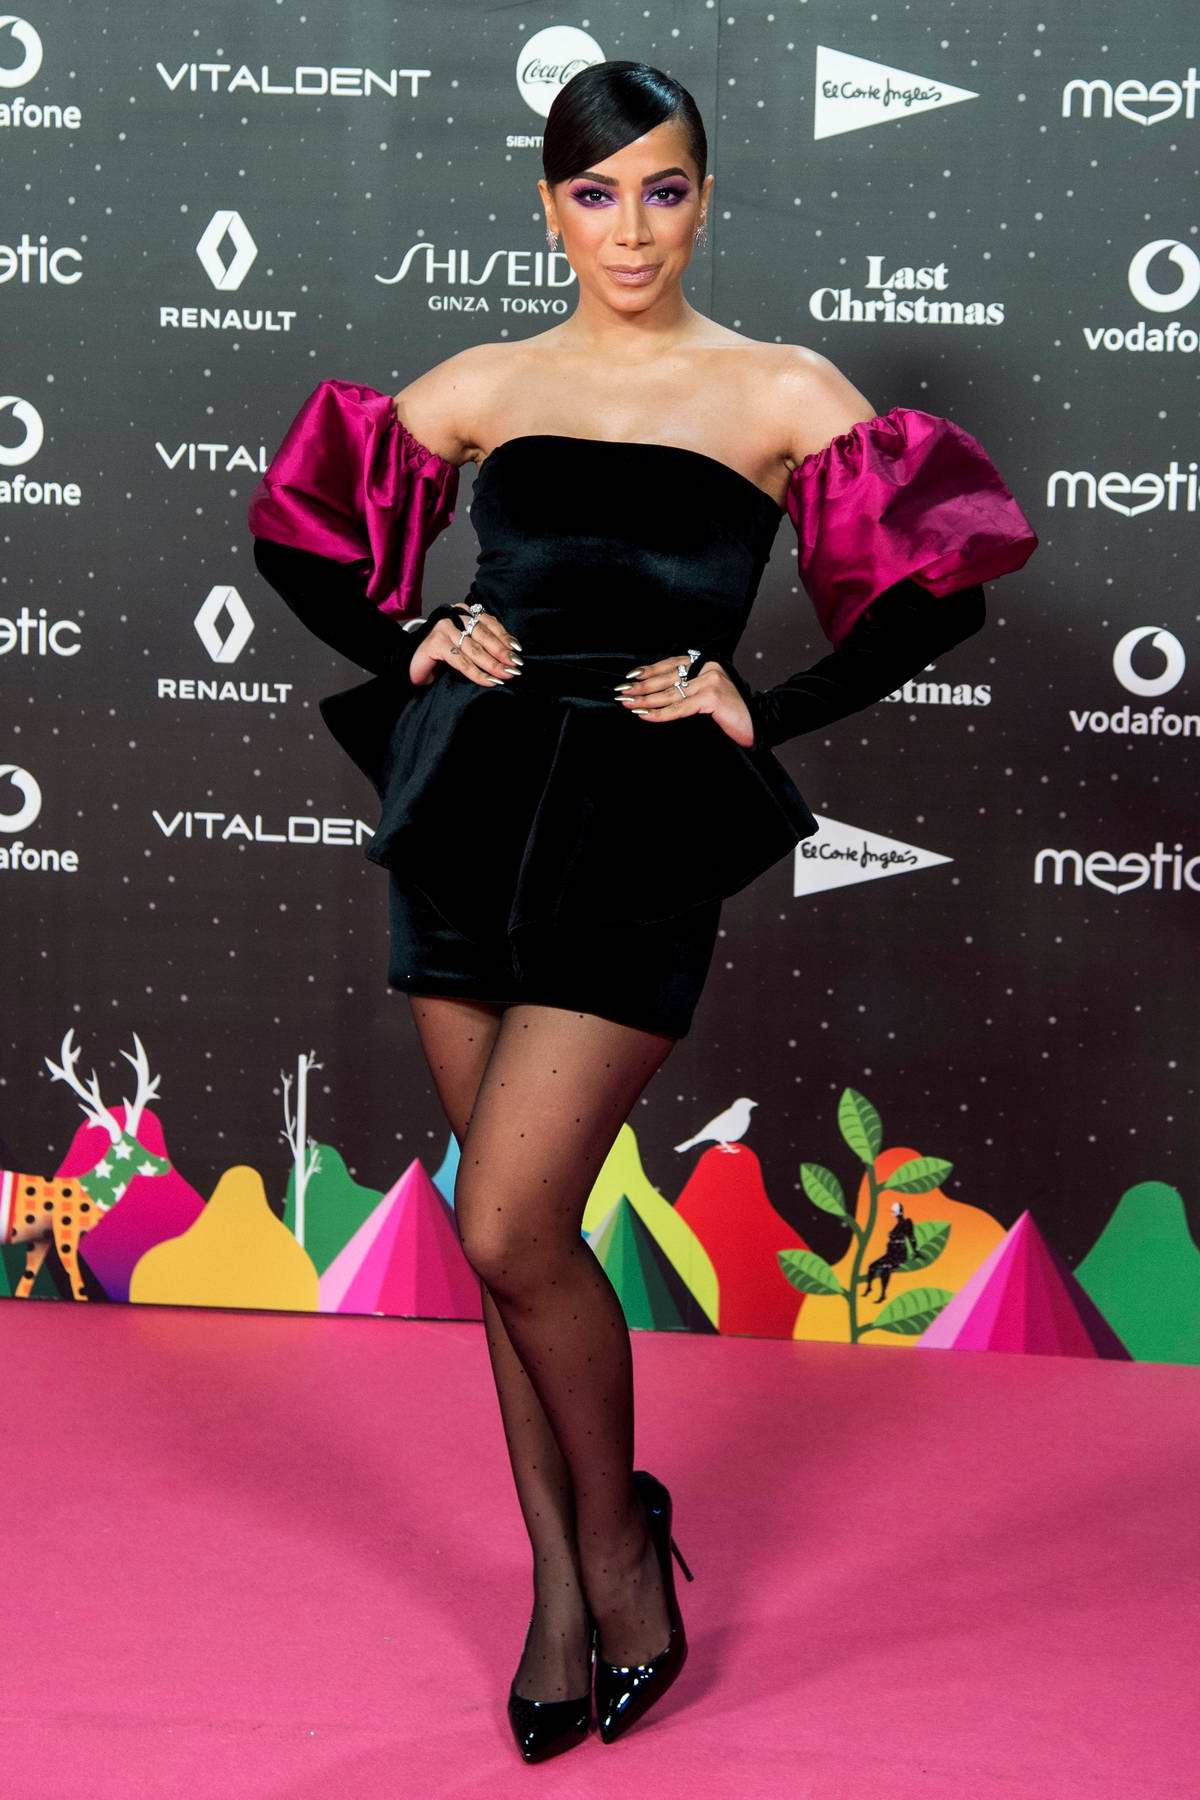 Anitta attends the LOS40 Music Awards 2019 at the WiZink Center in Madrid, Spain